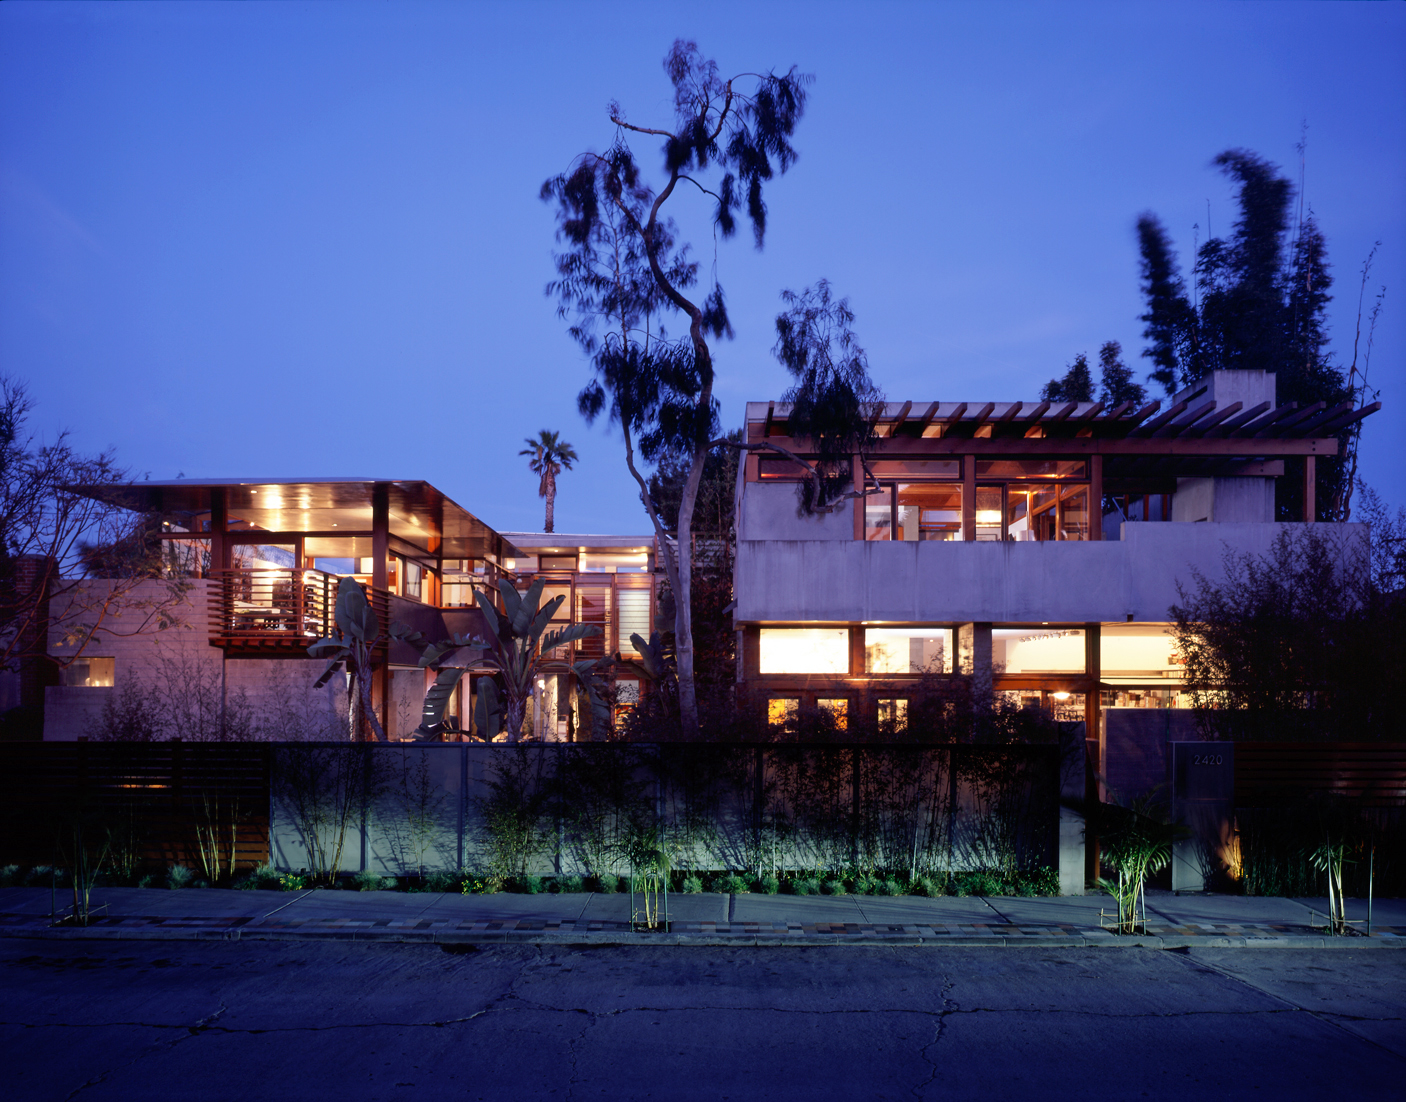 S.E.A.-Studio-Environmental-Architecture-David-Hertz-FAIA-Californication-McKinley-House-Venice-Beach-California-sustainable-regenerative-restorative-green-design-passive-systems-natural-ventilation-radiant-solar-panels-green-roof-concrete-1.jpg